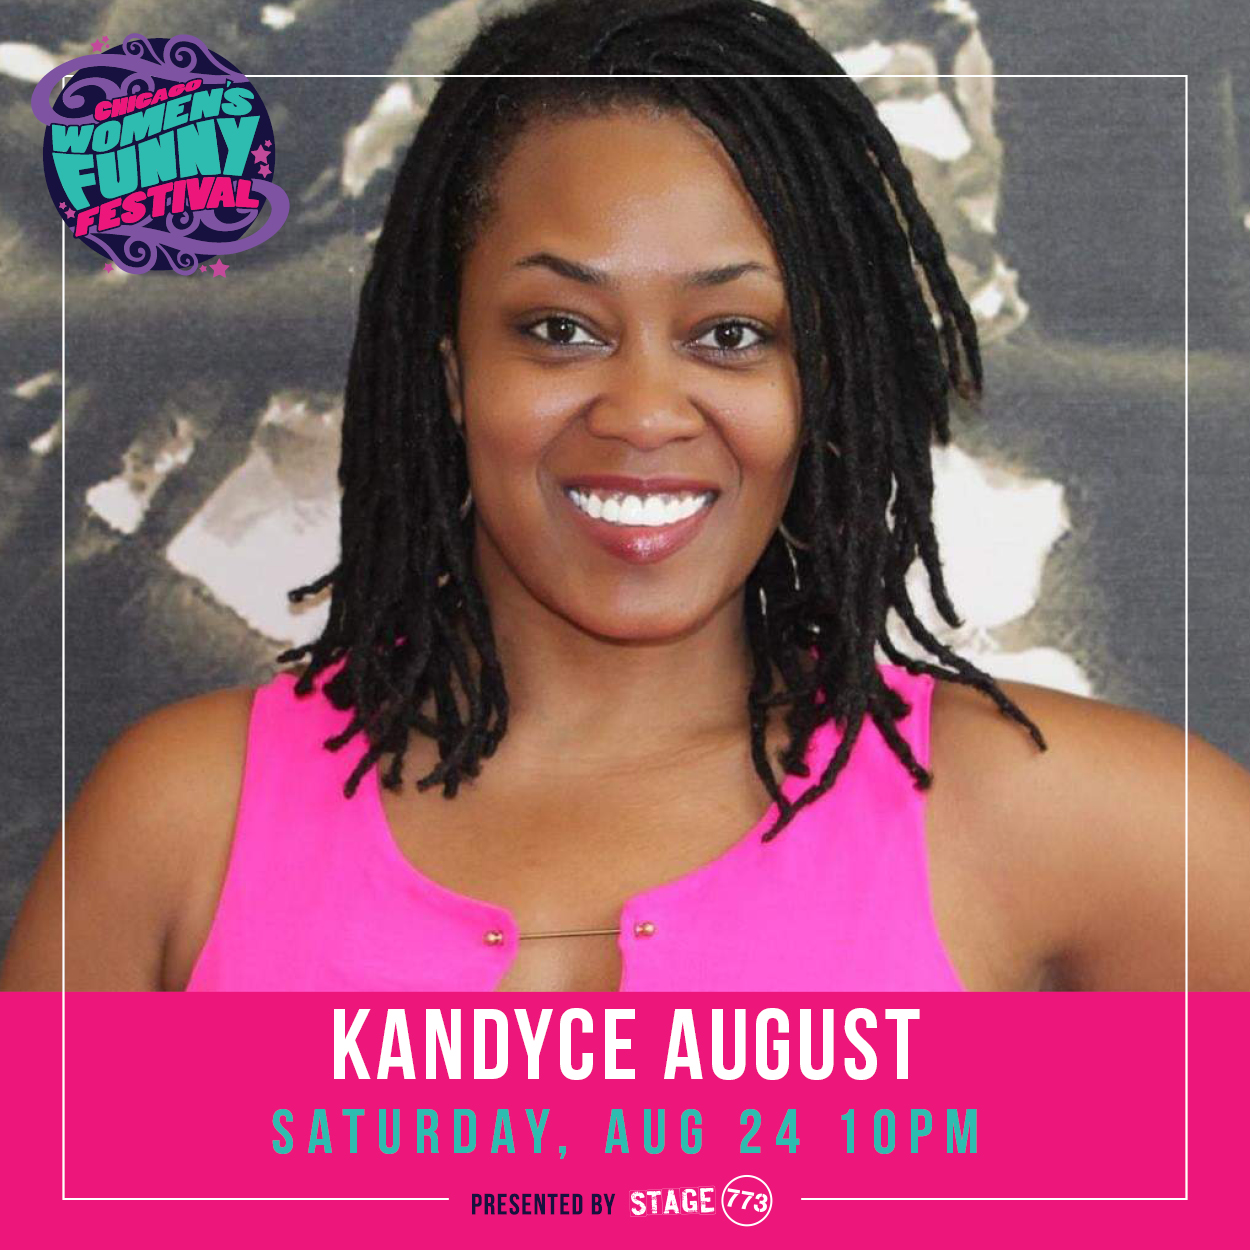 KandyceAugust_Saturday_10PM_CWFF20193.jpg